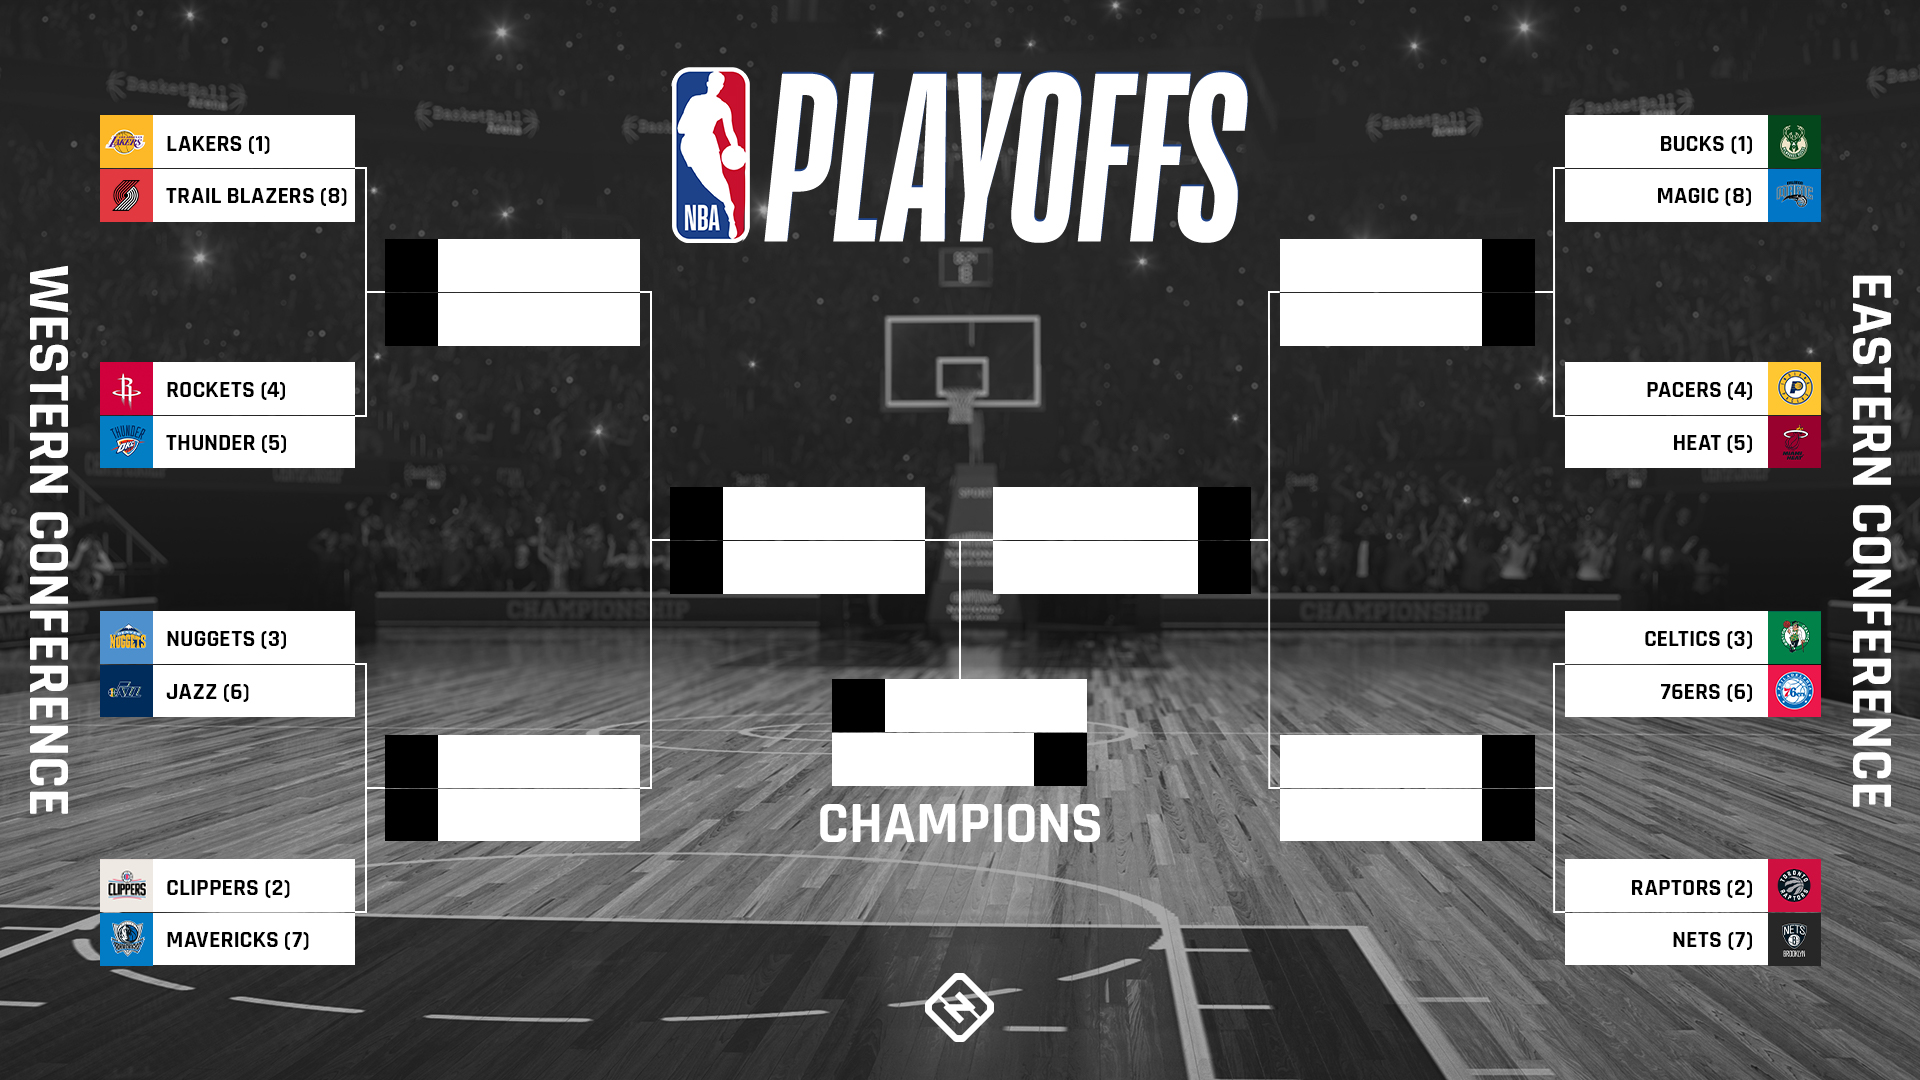 NBA playoff games today 2020: Live scores, TV schedule & more to watch Monday's matchups in bubble 1